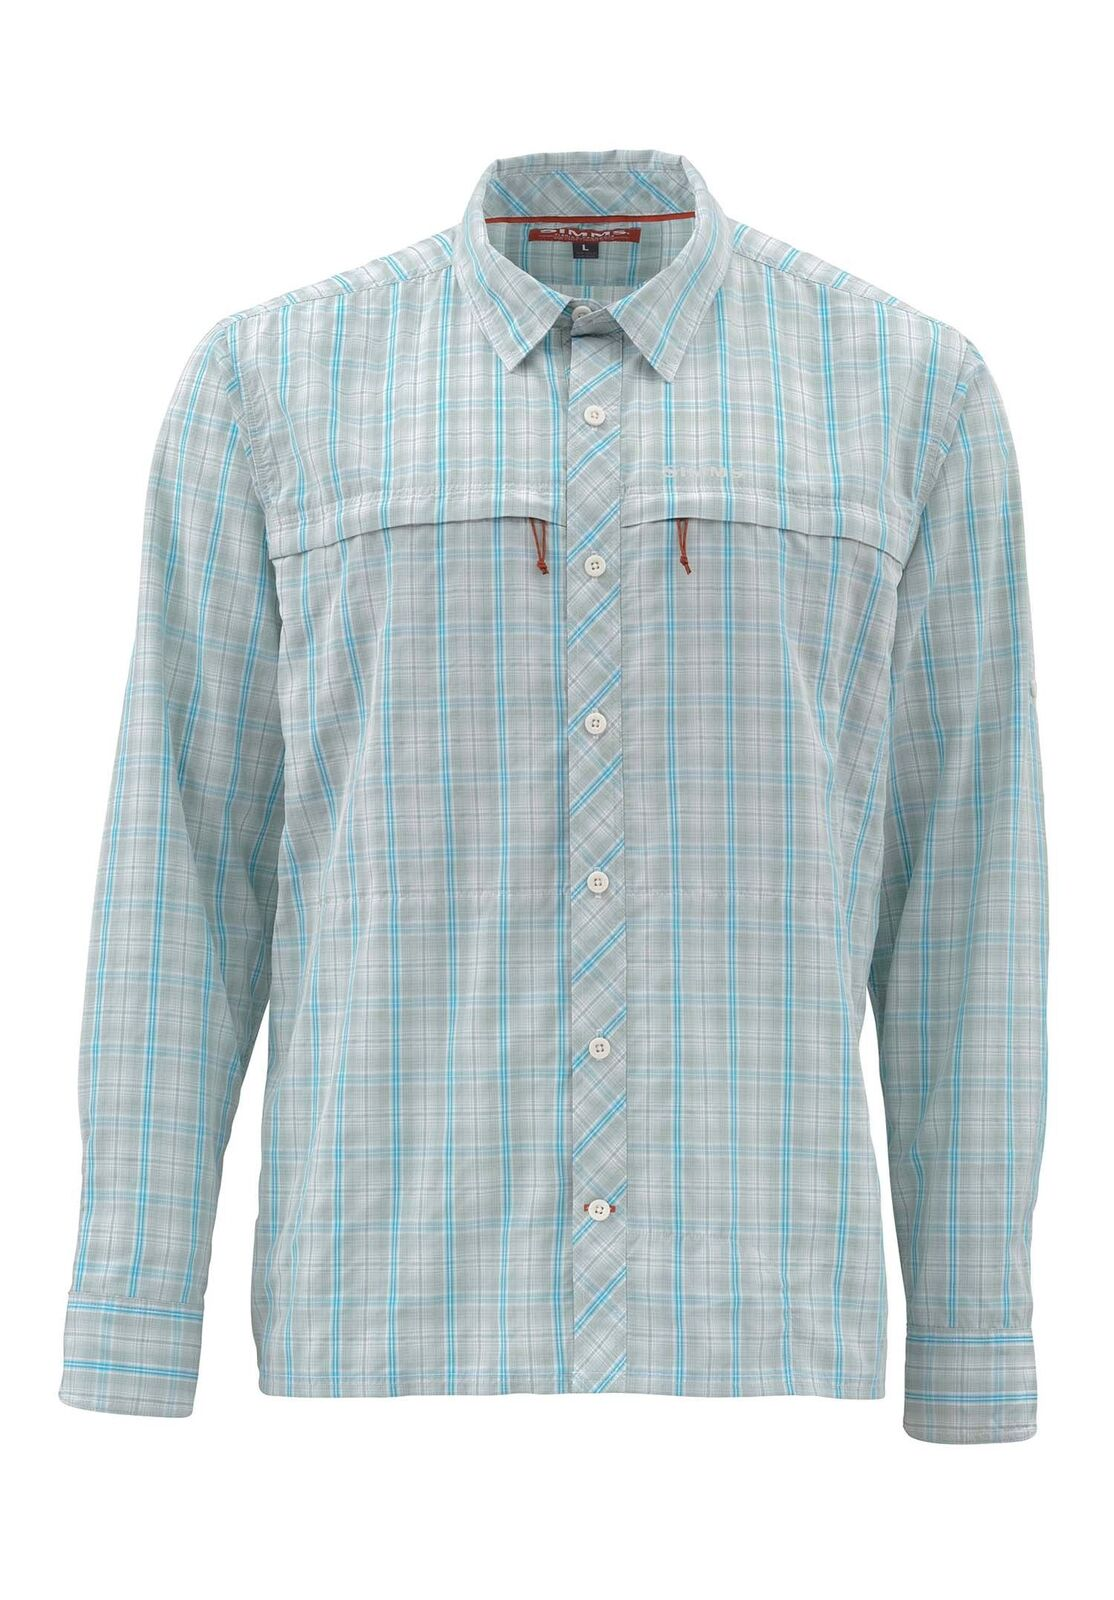 Simms Stone Cold Long Sleeve Shirt Celadon  Plaid- Size XL -CLOSEOUT  quick answers